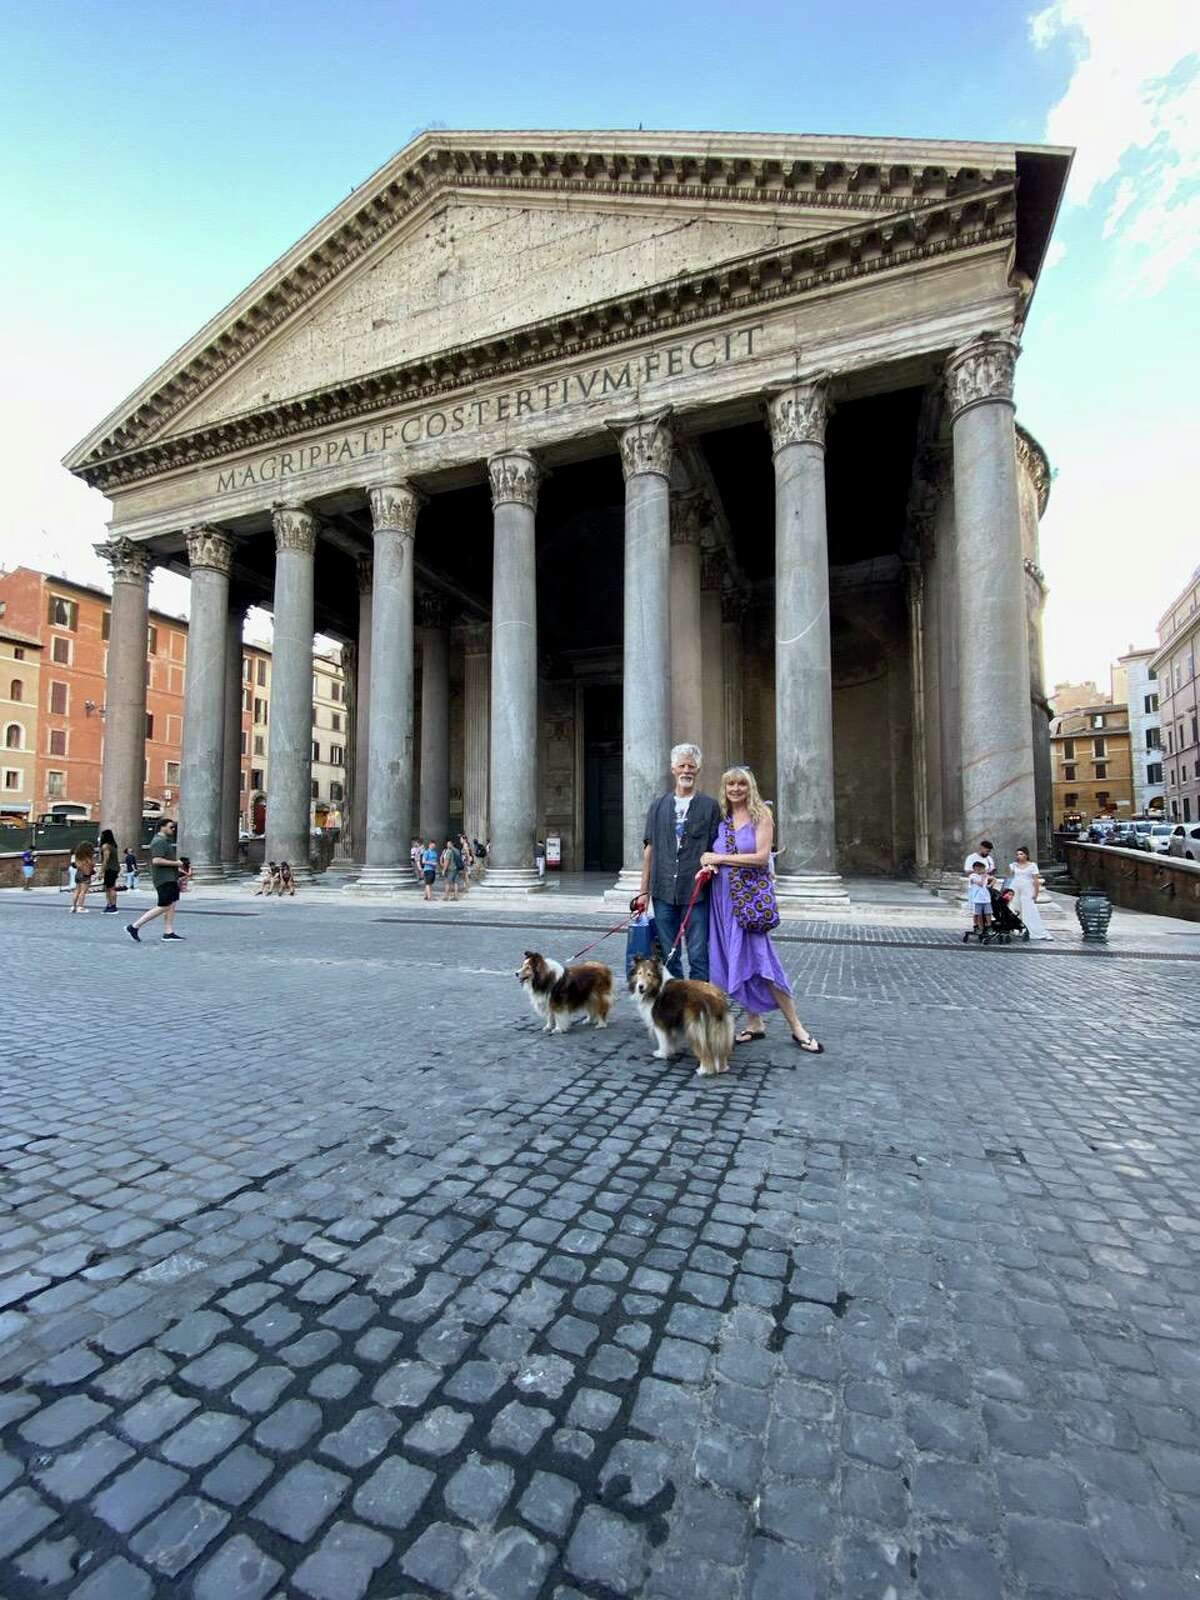 Connecticut Academy for the Arts in Torrington has received a grant to provide Italian studies to local students. The directors, John and Teresa Sullivan, traveled to Italy recently to visit the Centro Linguistico Italiano Dante Alighieri, in Rome. They are pictured with their dogs at the Pantheon.